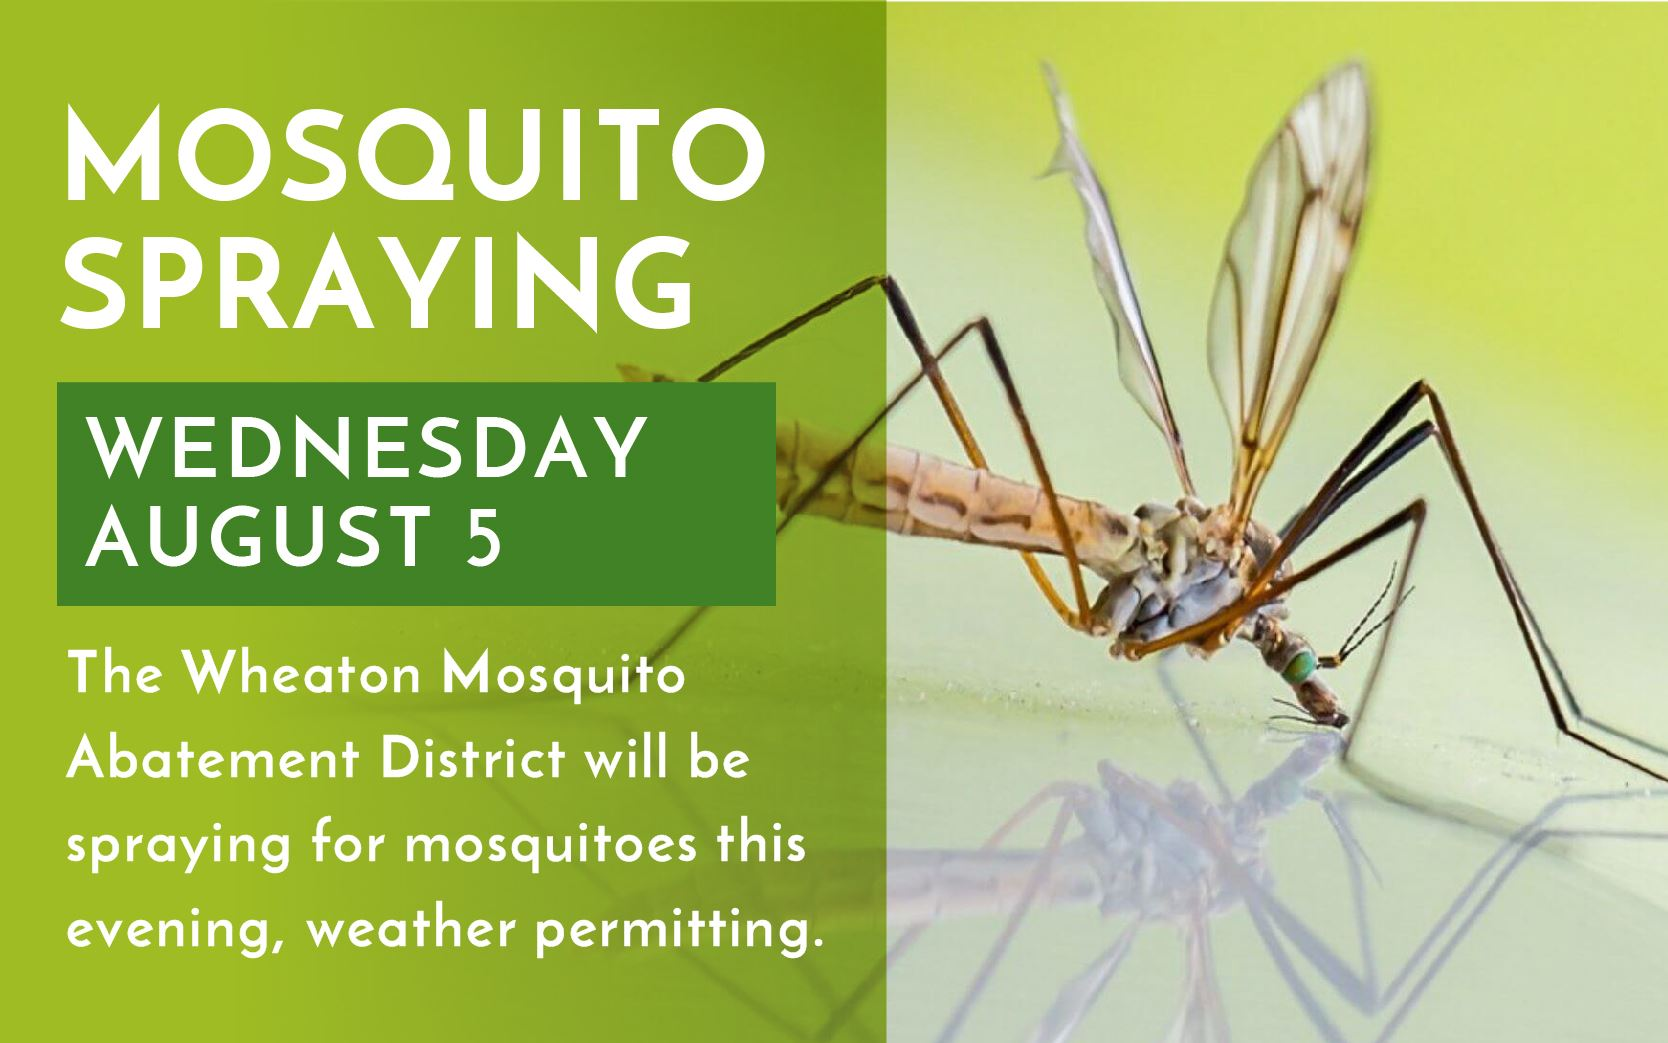 MosquitoAbatement_Artwork080420-01